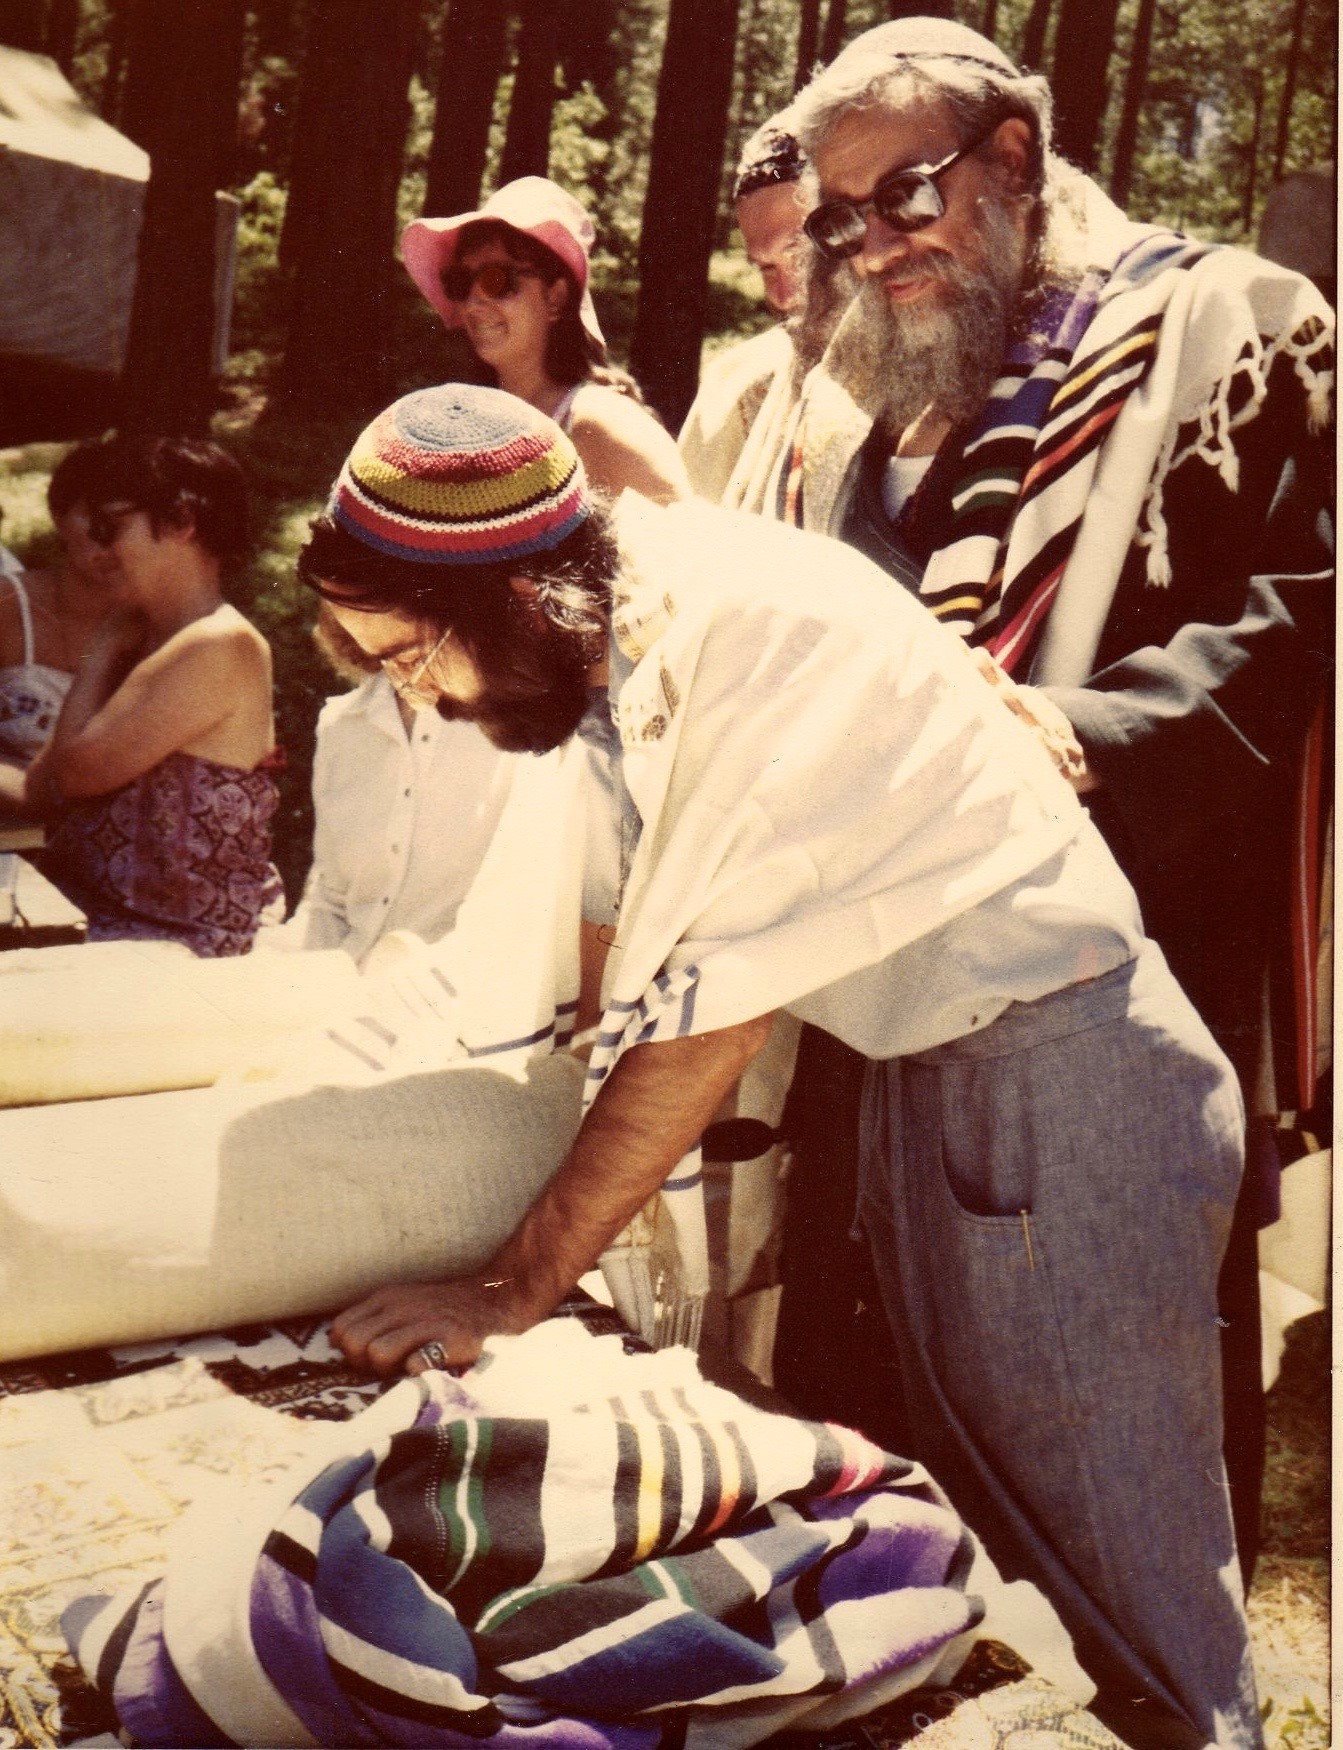 Simcha Raphael reading from the Torah, with Reb Zalman. Ben Lomand, CA, 1979